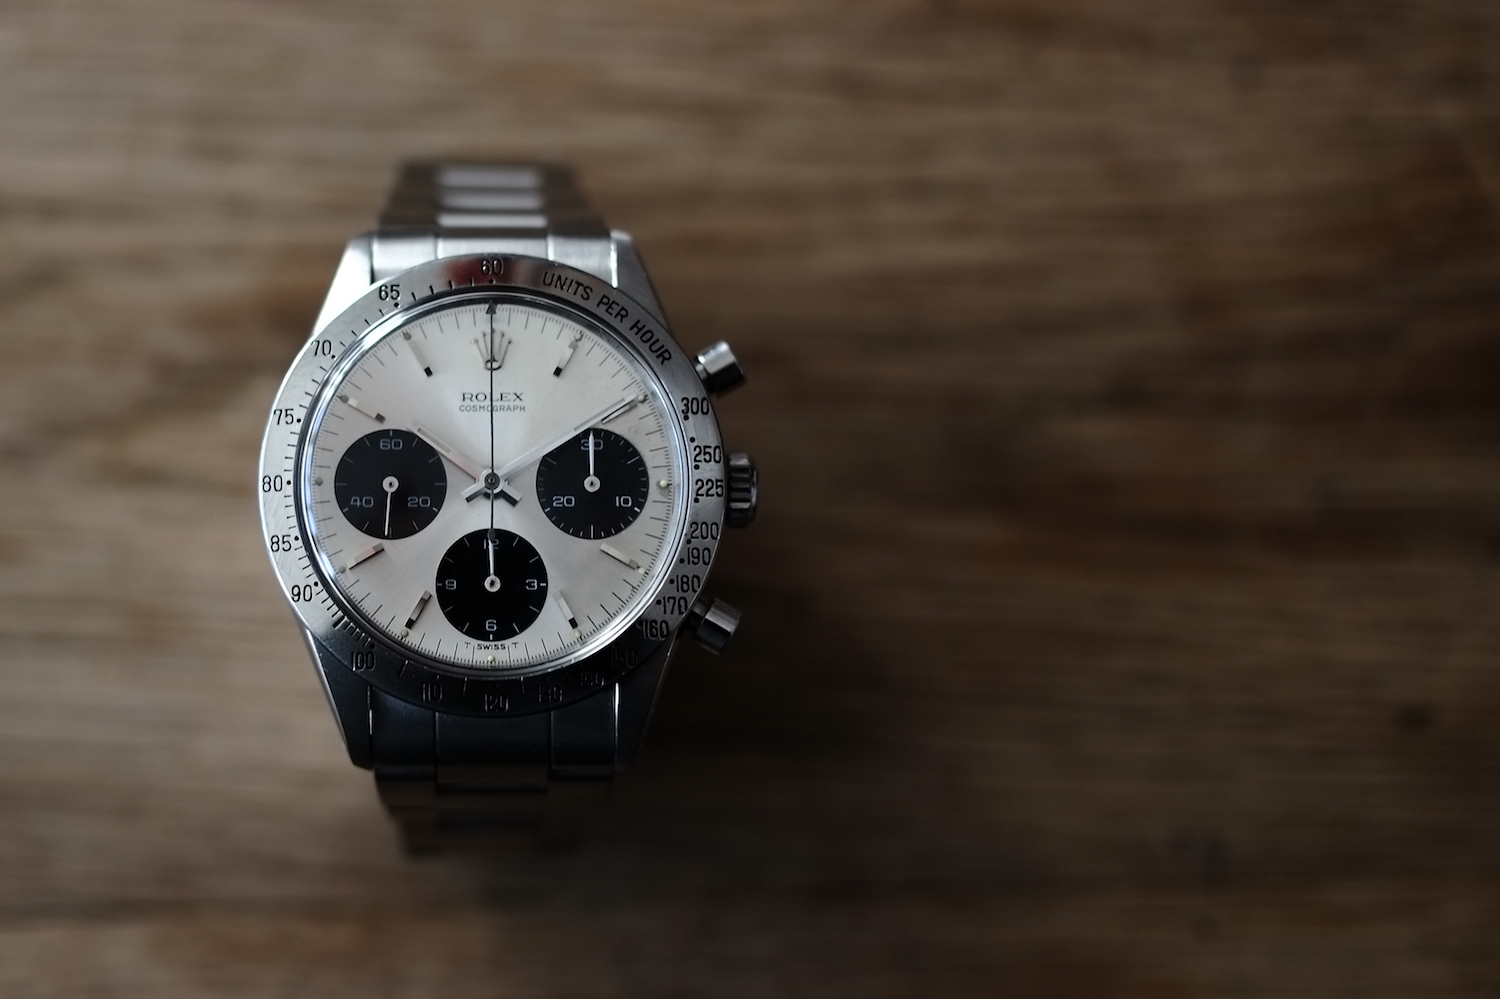 The Collector's Series - Kristian Haagen and his sexy, early Vintage Rolex Daytona 6239 - Monochrome Watches